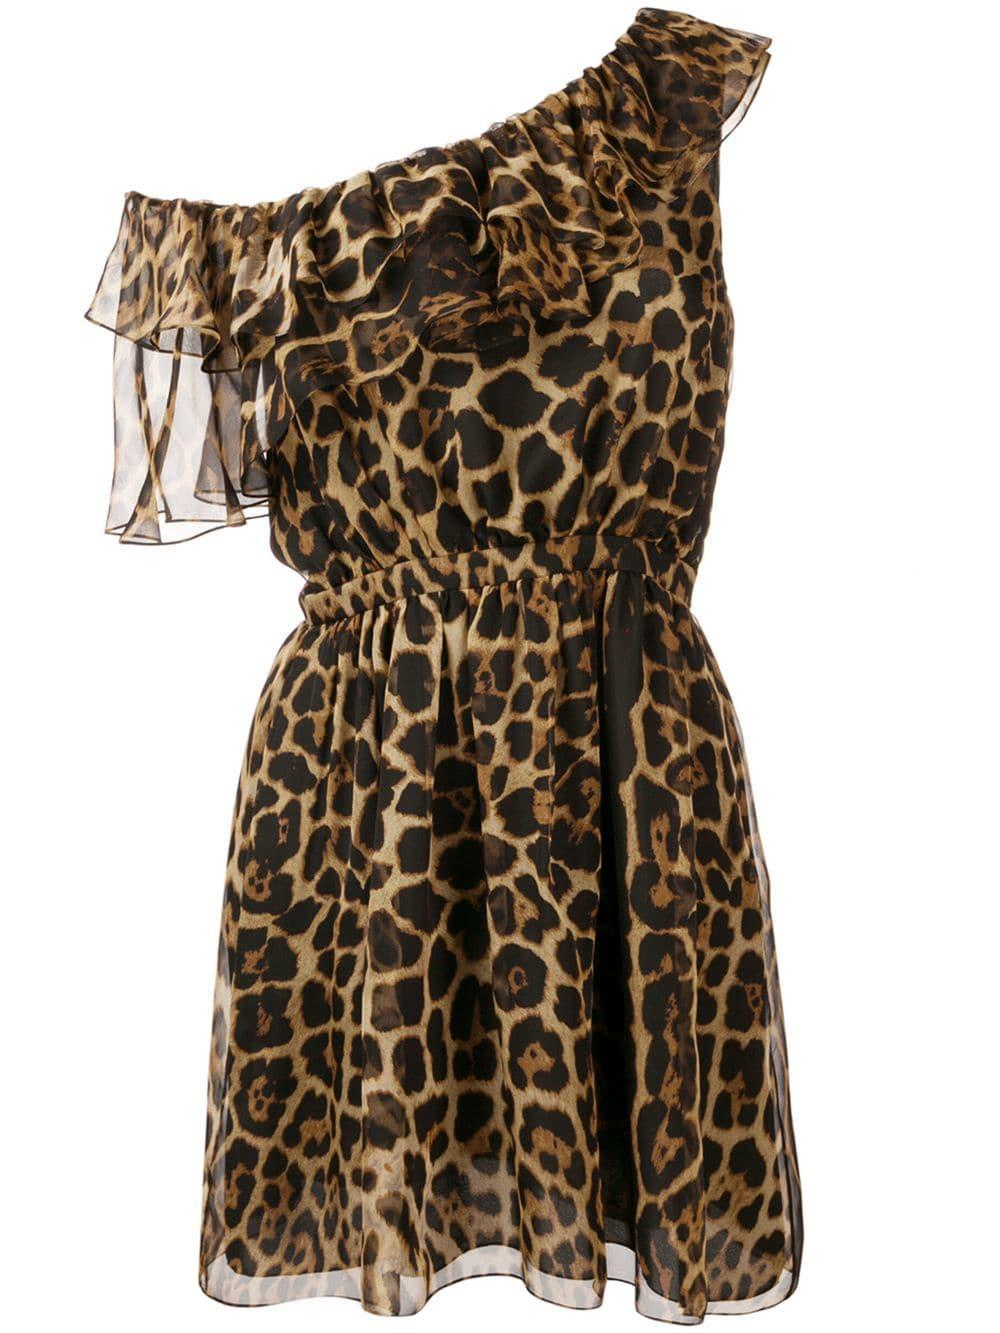 Drop Shoulder Leopard Print Short Dress